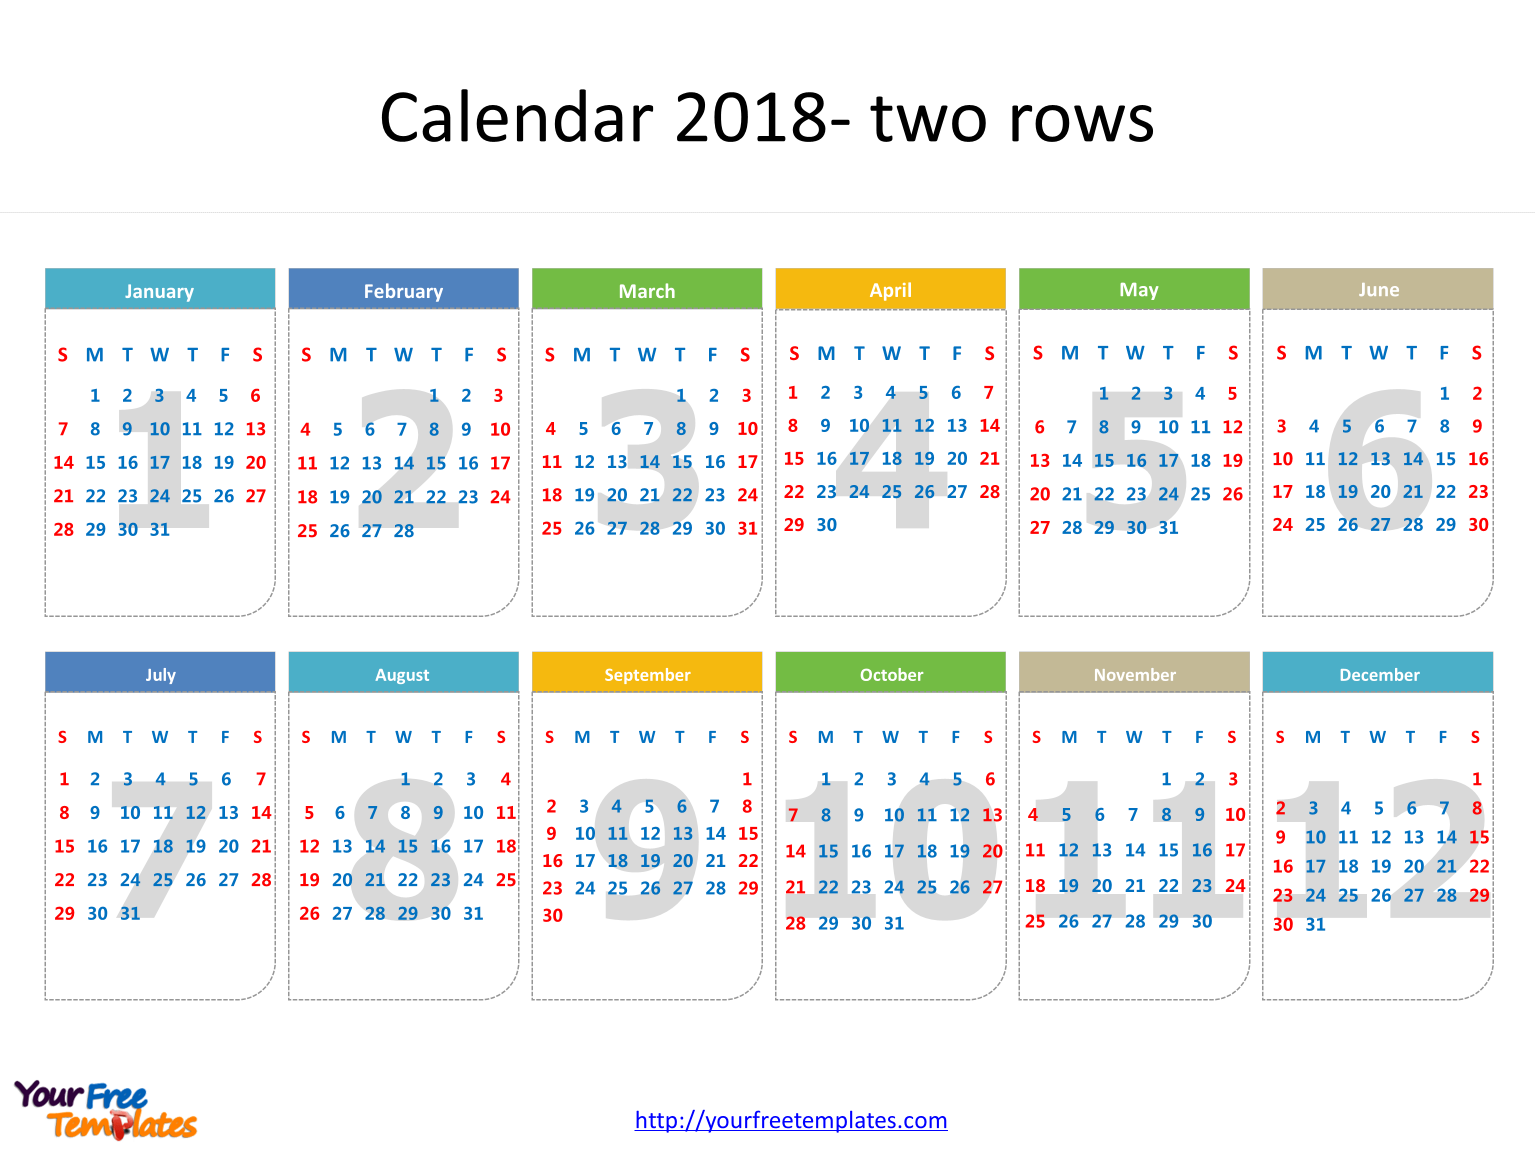 2018 Calendar template with every date in it